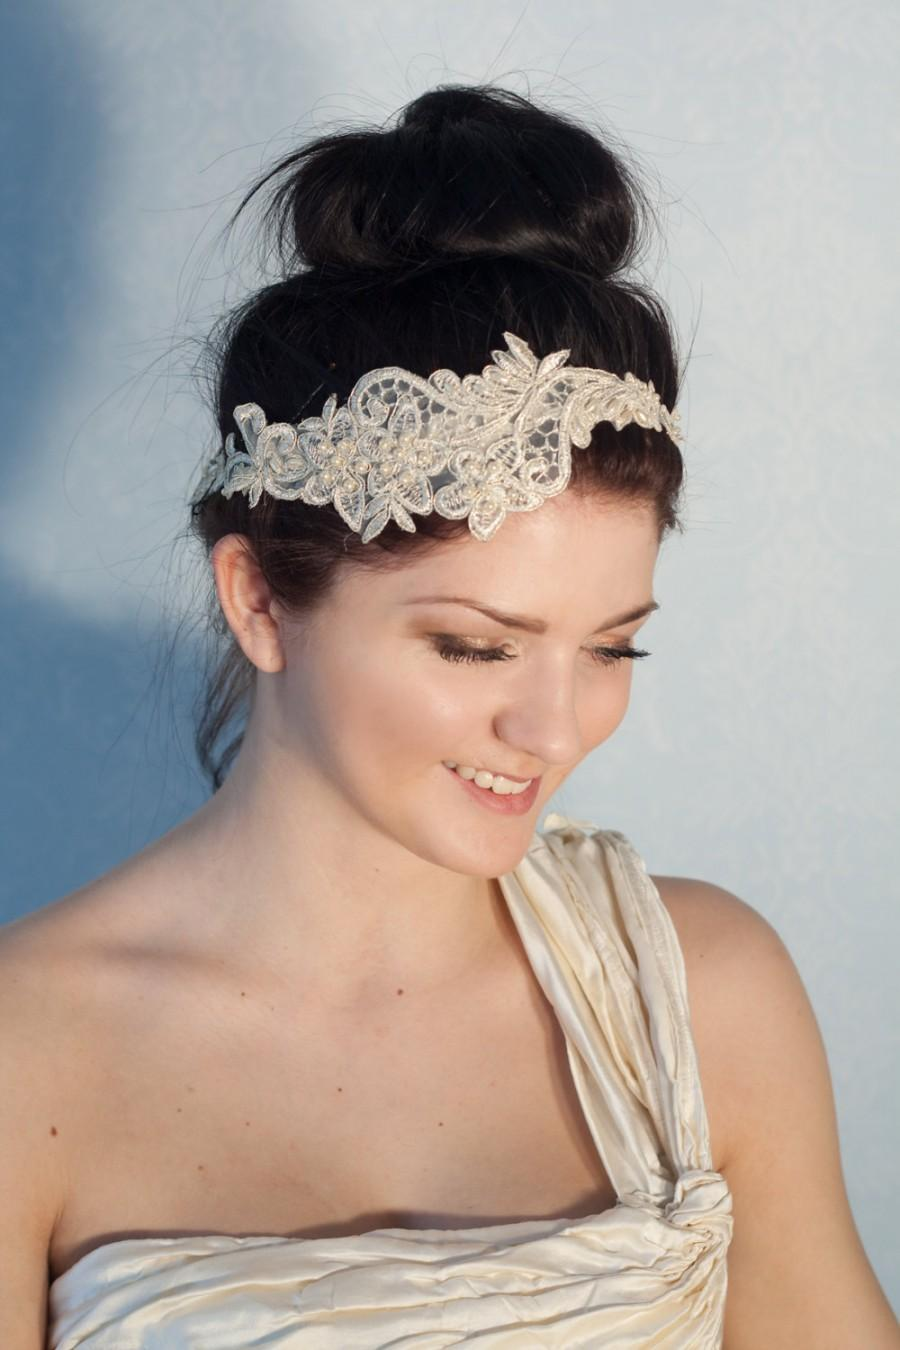 Mariage - Bridal gold lace headband with pearls, boho headband, boho chic bride, bridal headpiece